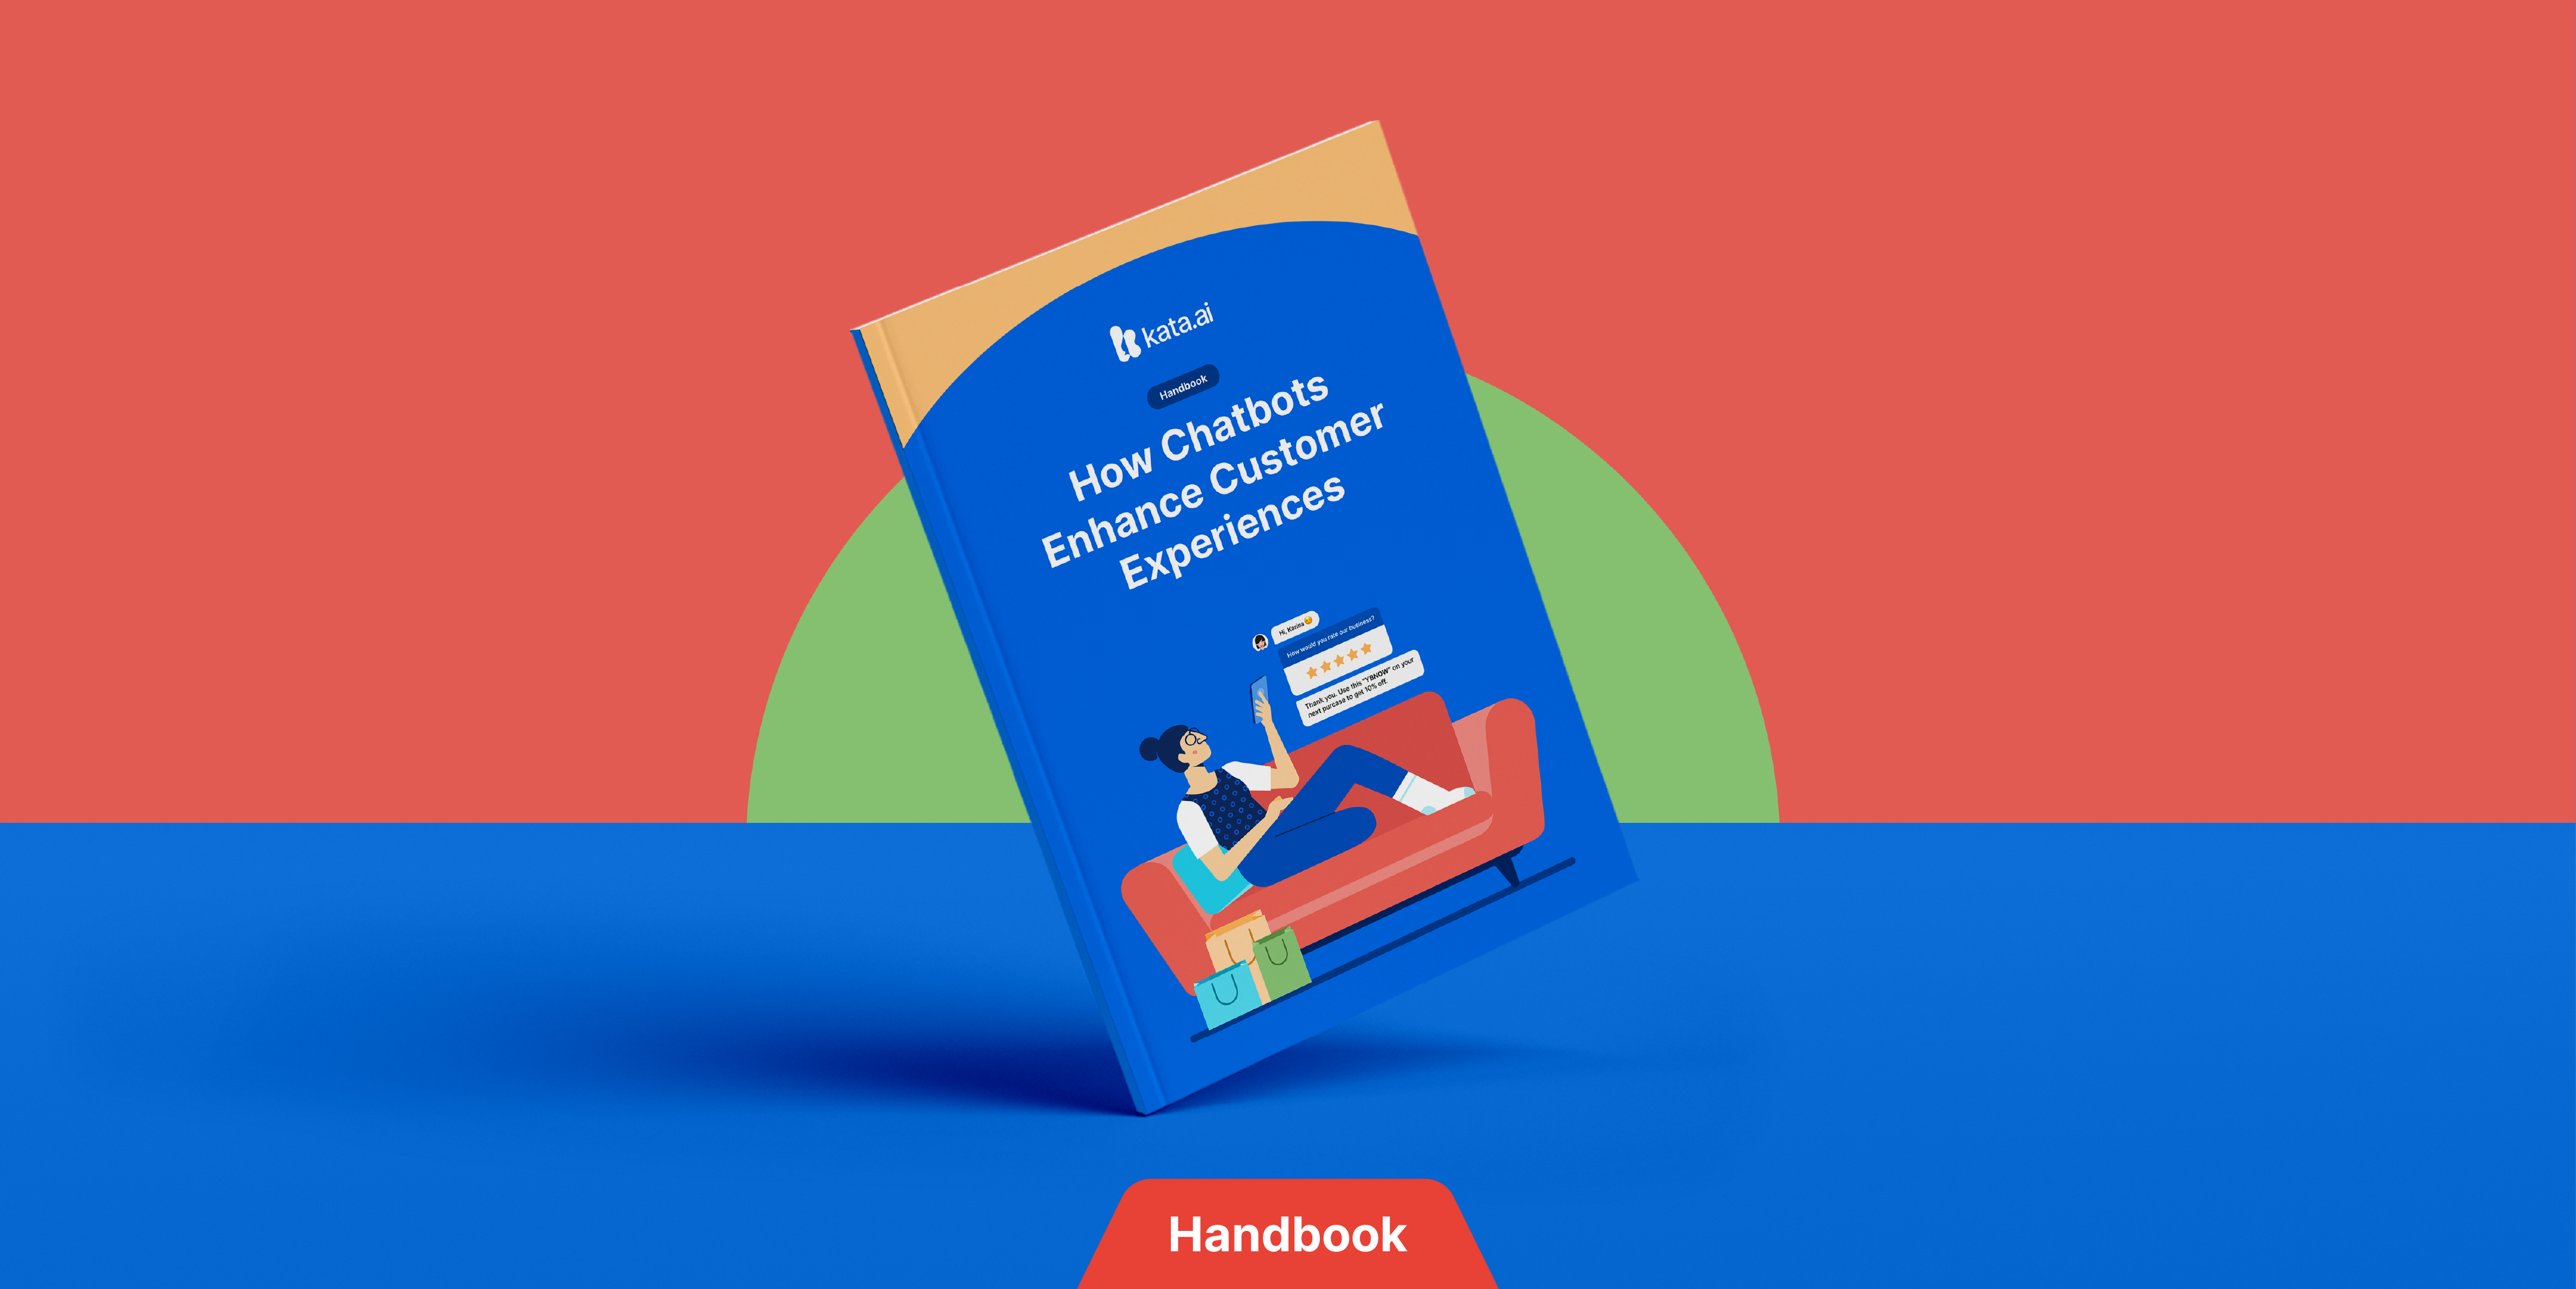 In our latest How Chatbots Enhance Customer Experiences handbook, we explore how chatbots can help businesses improve customer service and customer experience.